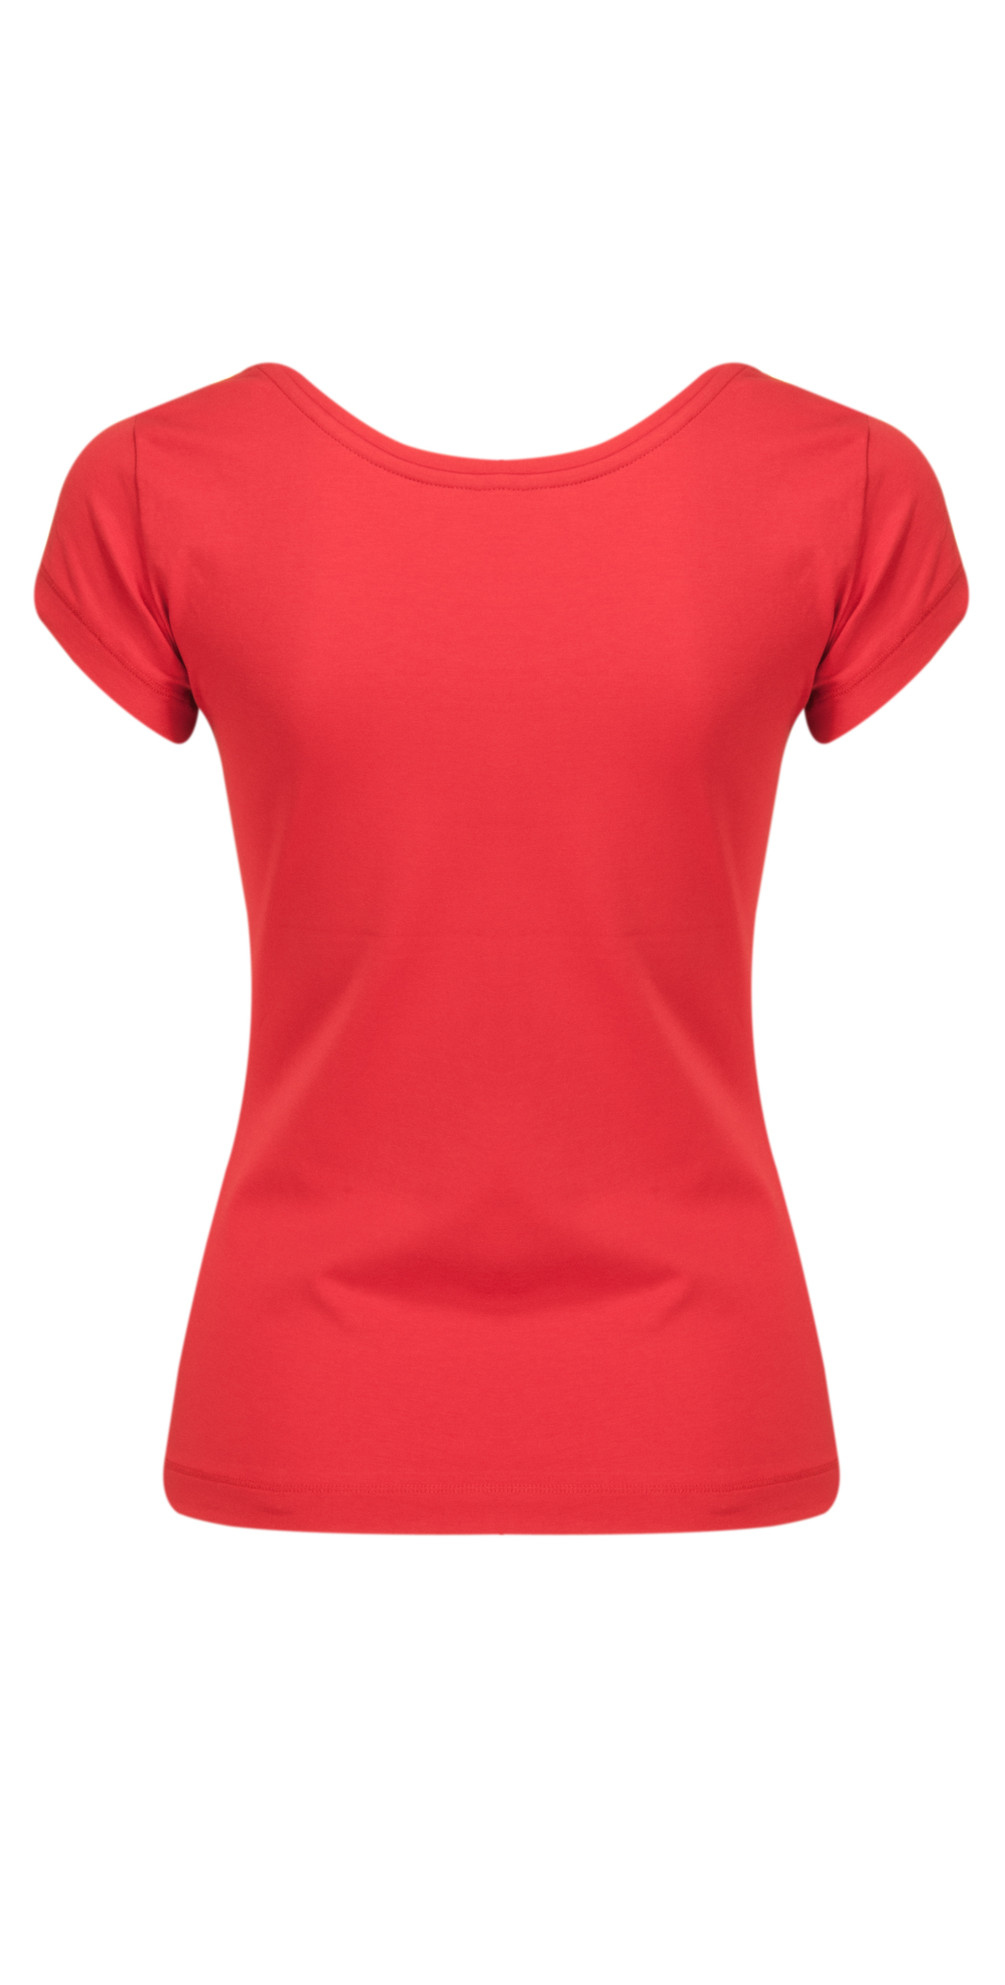 Short Sleeve Light Cotton T-shirt main image